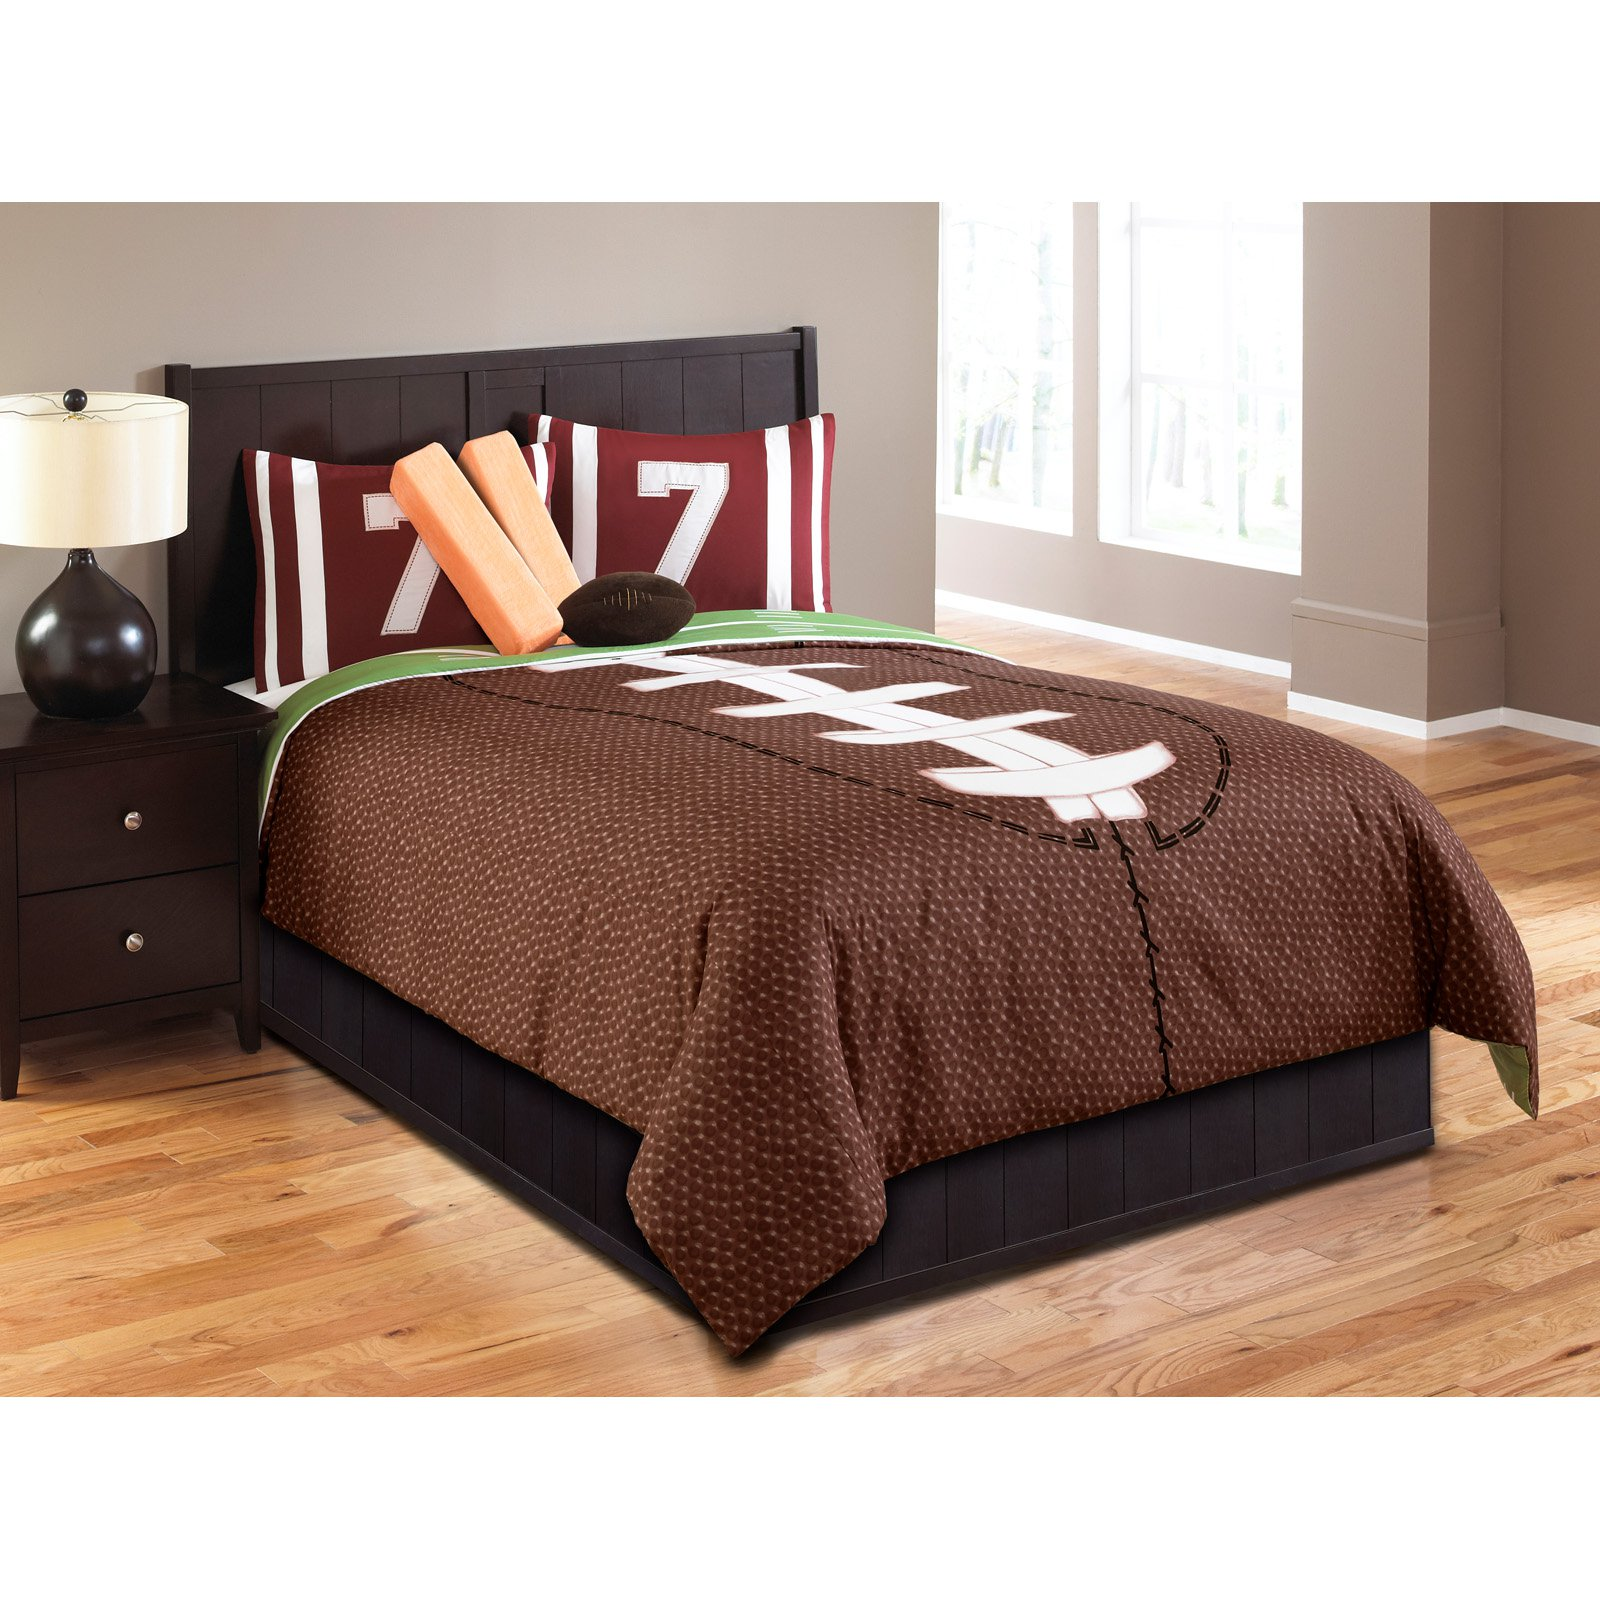 Touchdown Comforter Set by Hallmart Kids